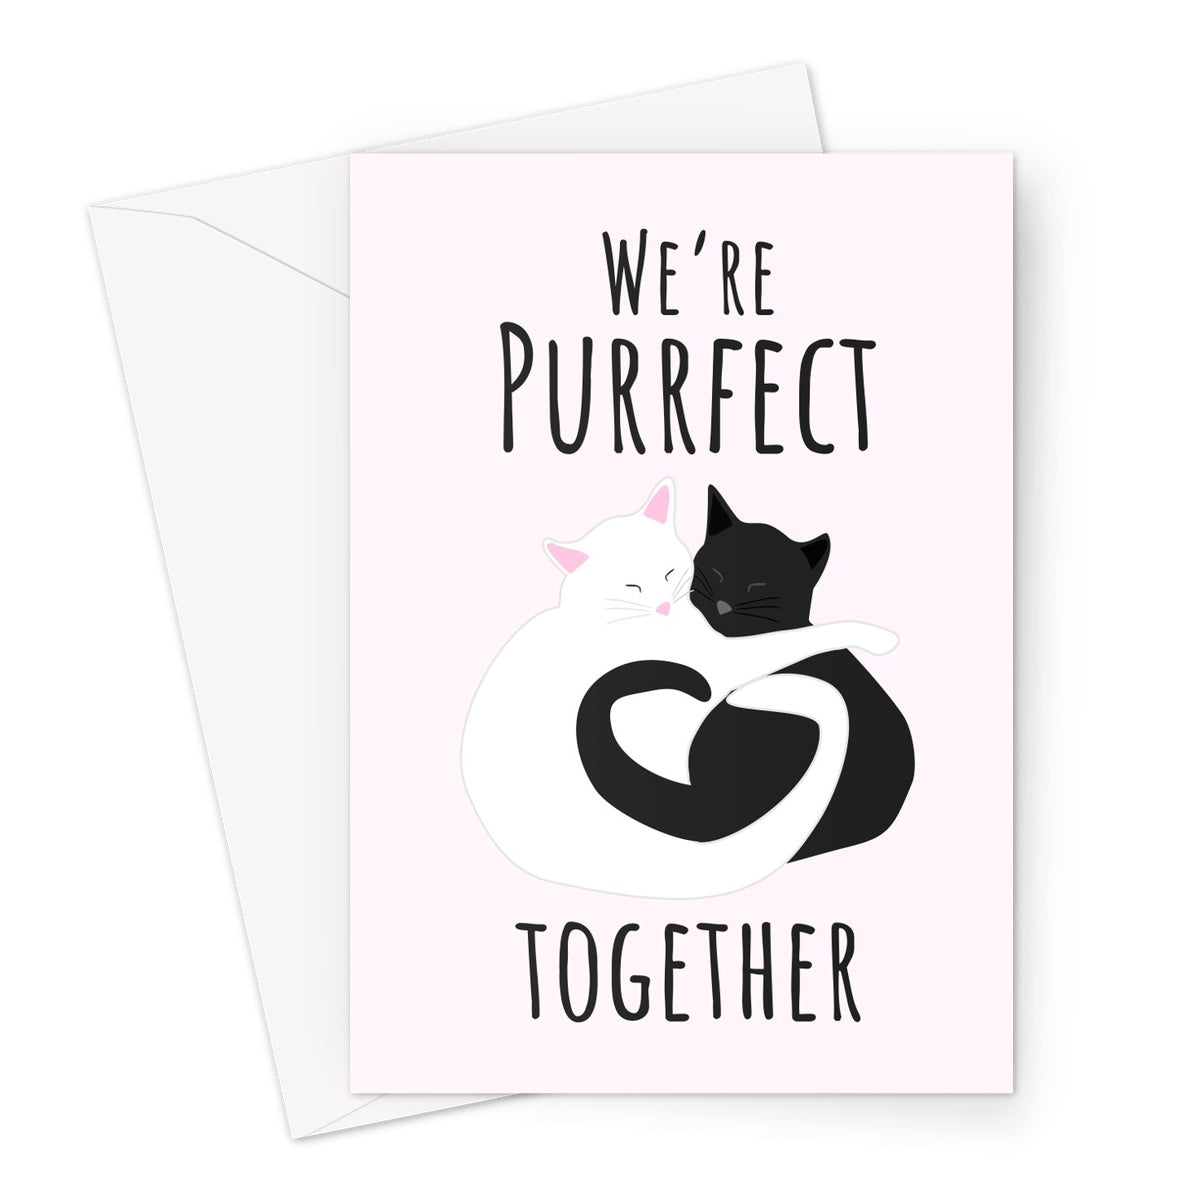 We're Purrfect Together Valentine's Day Funny Punny Cute Kawaii Cats Kittens Heart Pink Perfect Love You Boyfriend Girlfriend Wife Husband Partner Greeting Card